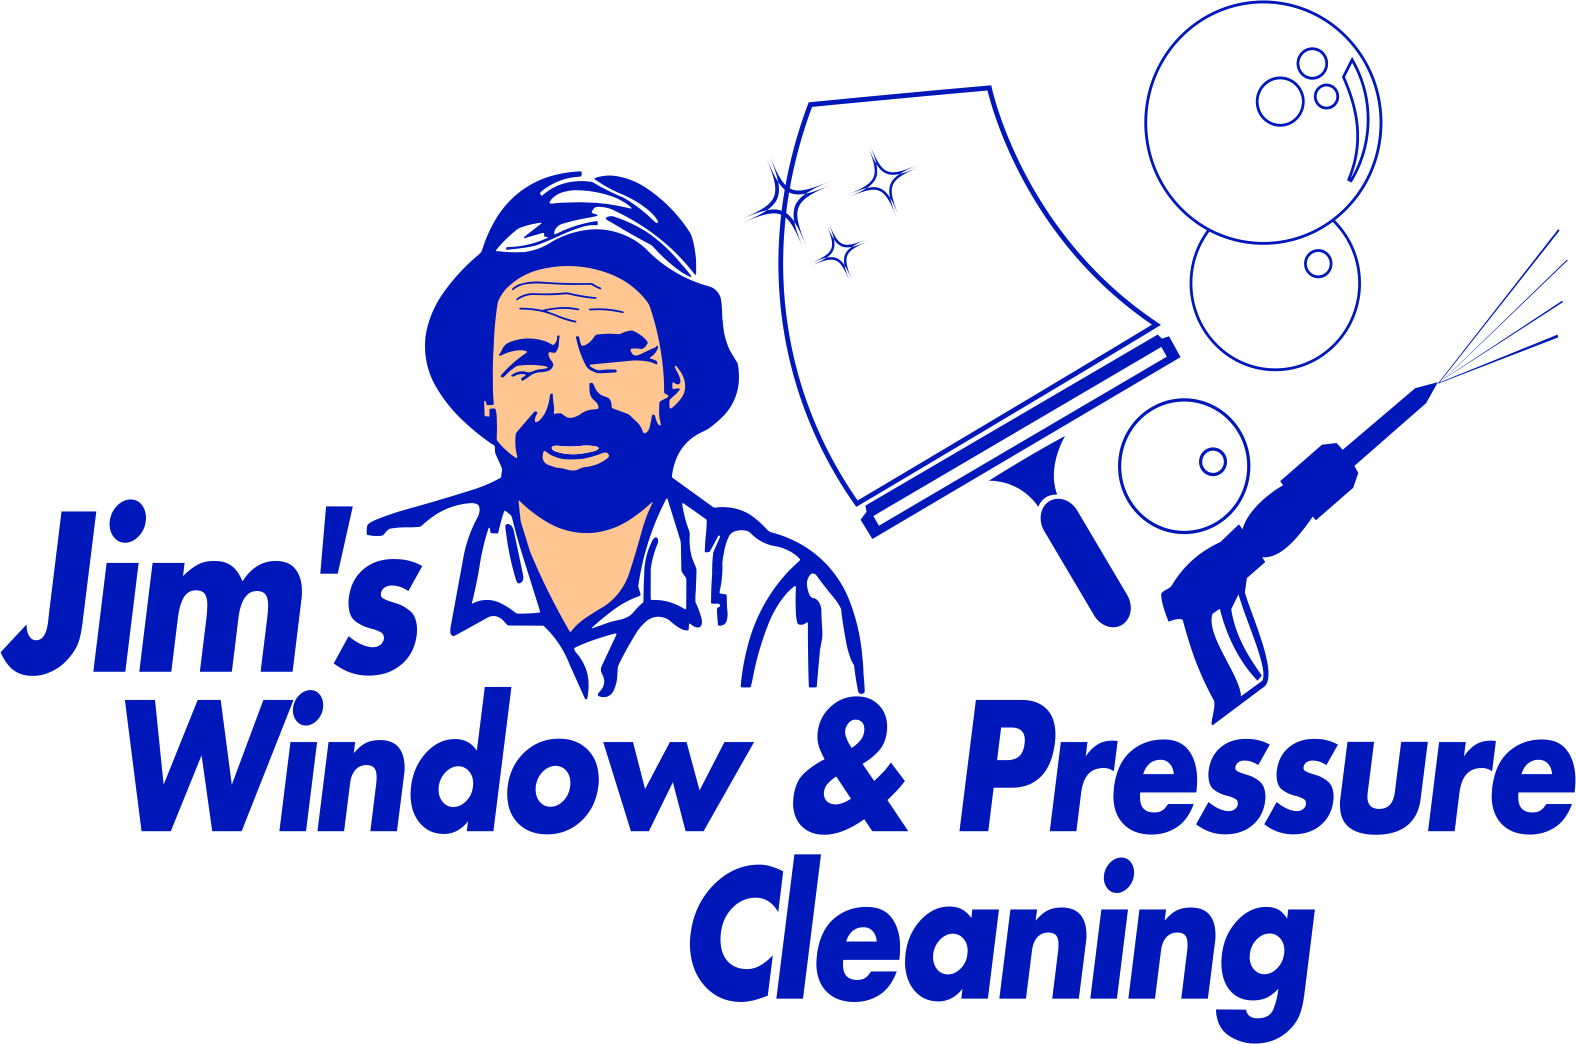 Jim's Window & Pressure Cleaning Adelaide Enfield SPECIAL 2 for 1!!!